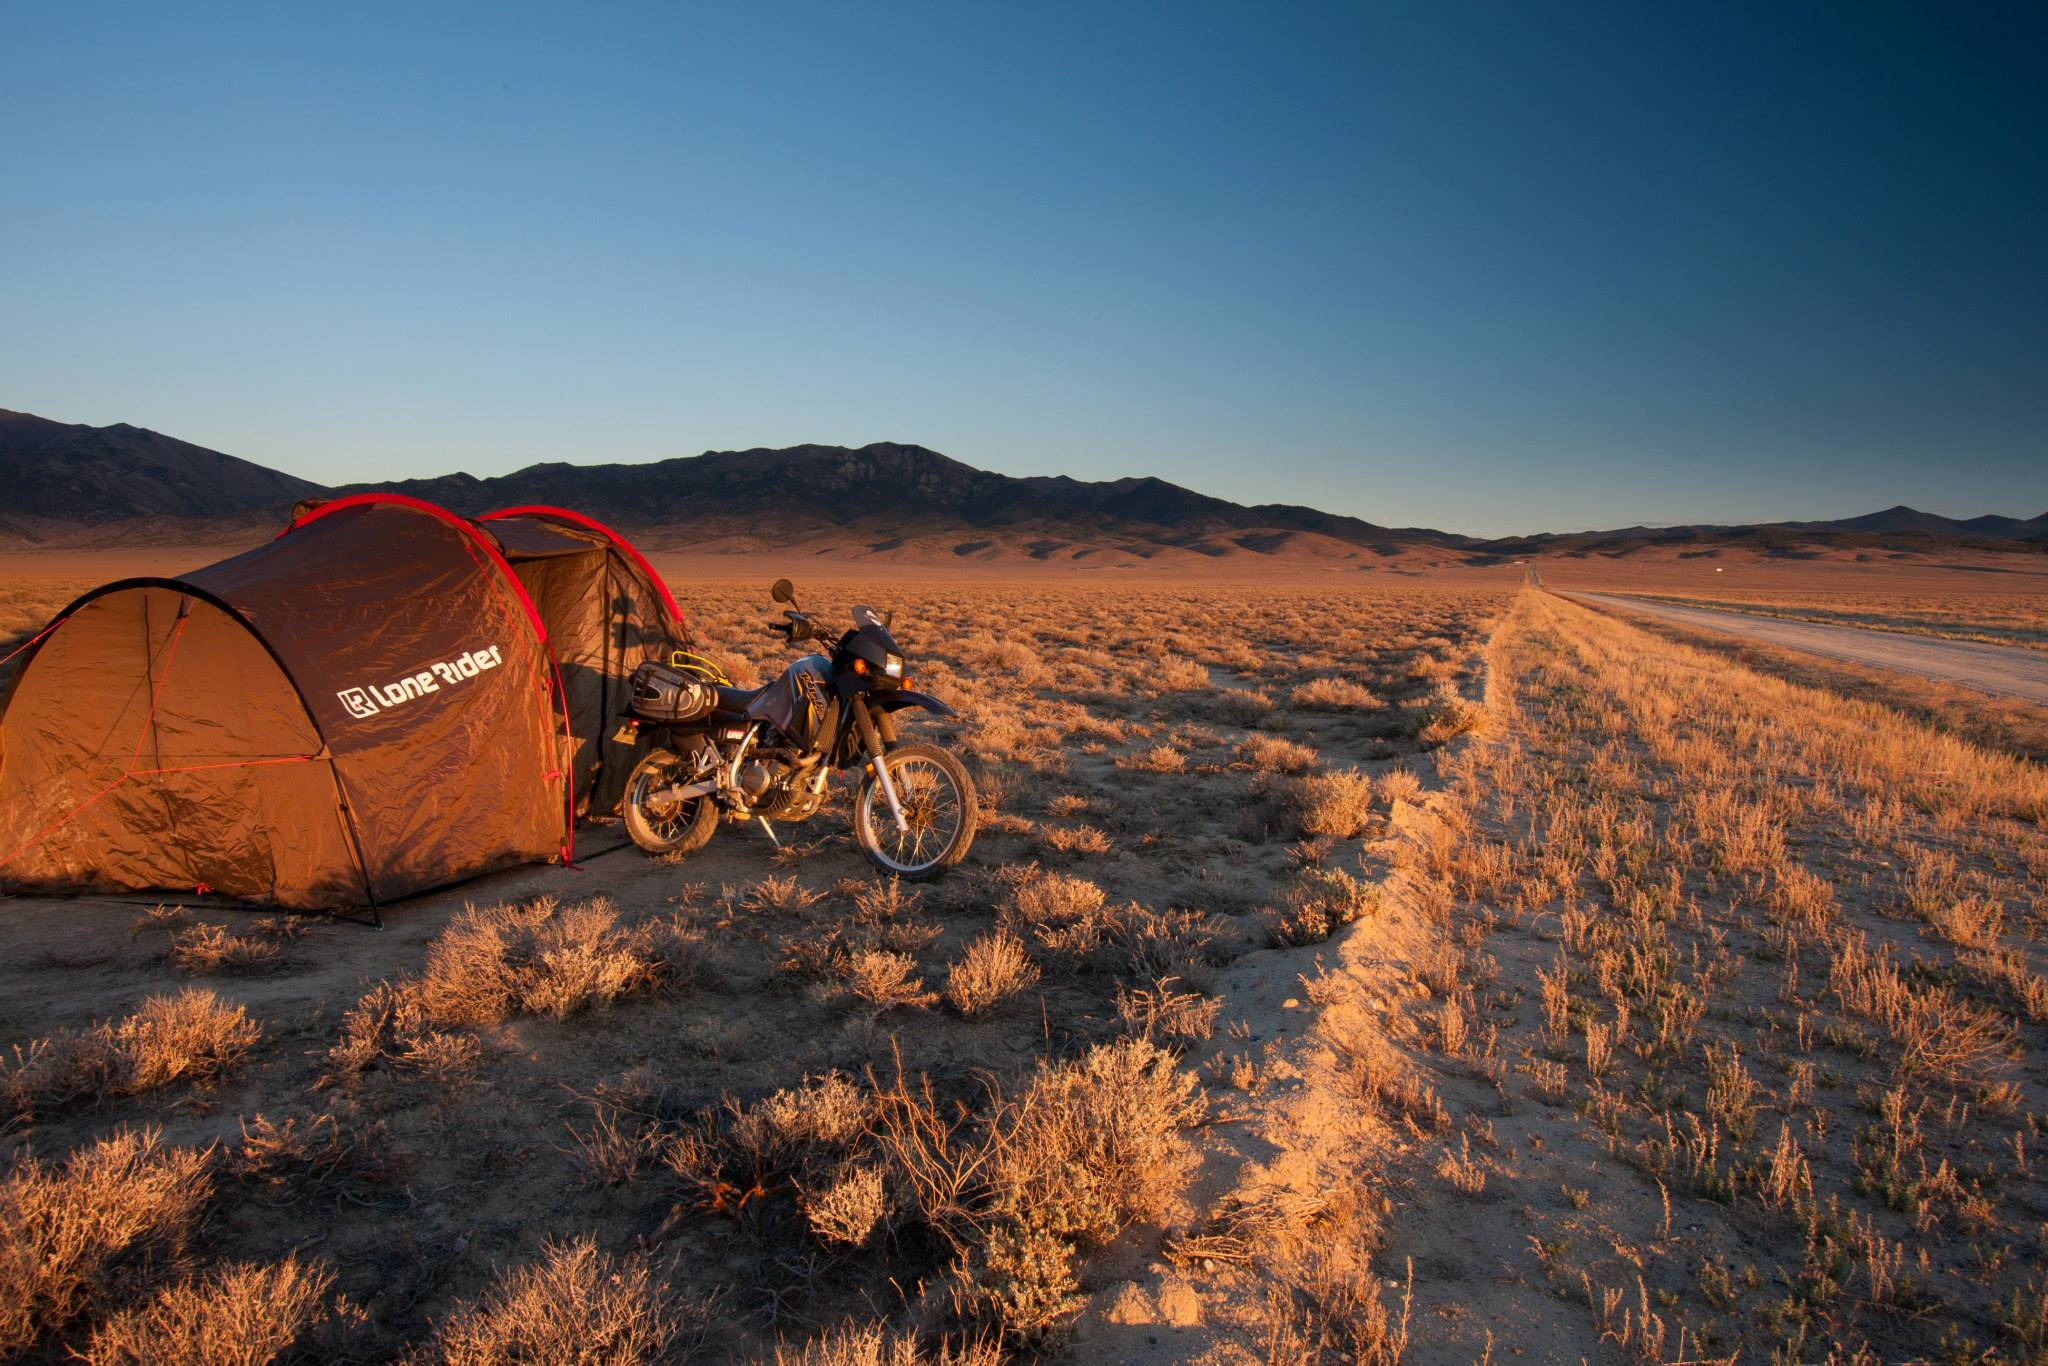 Wild leave no trace motorcycle camping - photo by Lone Rider MotoTent v2 customer